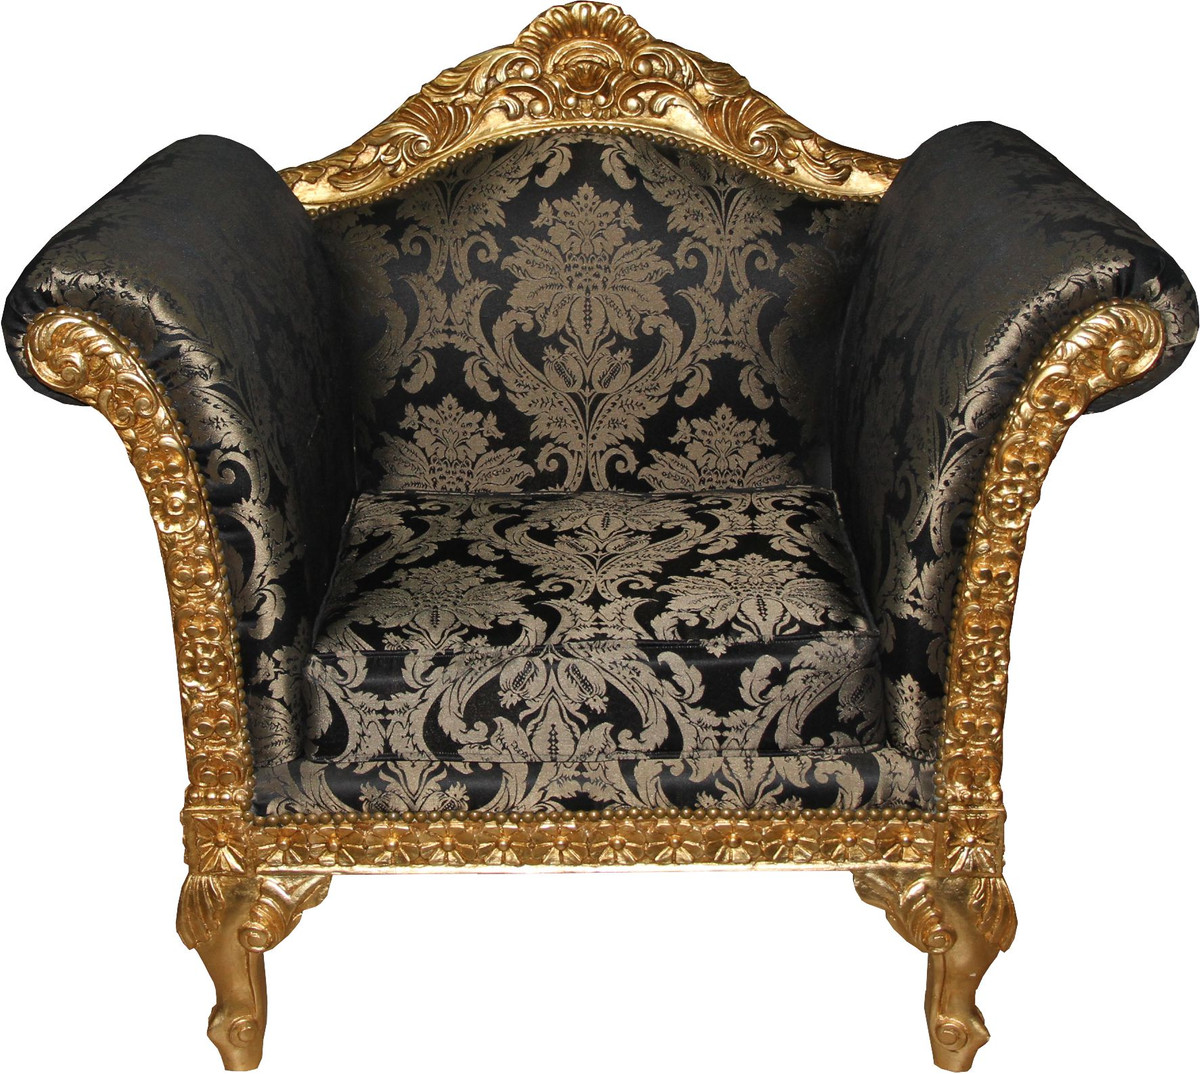 casa padrino barock lounge sessel schwarz muster gold. Black Bedroom Furniture Sets. Home Design Ideas